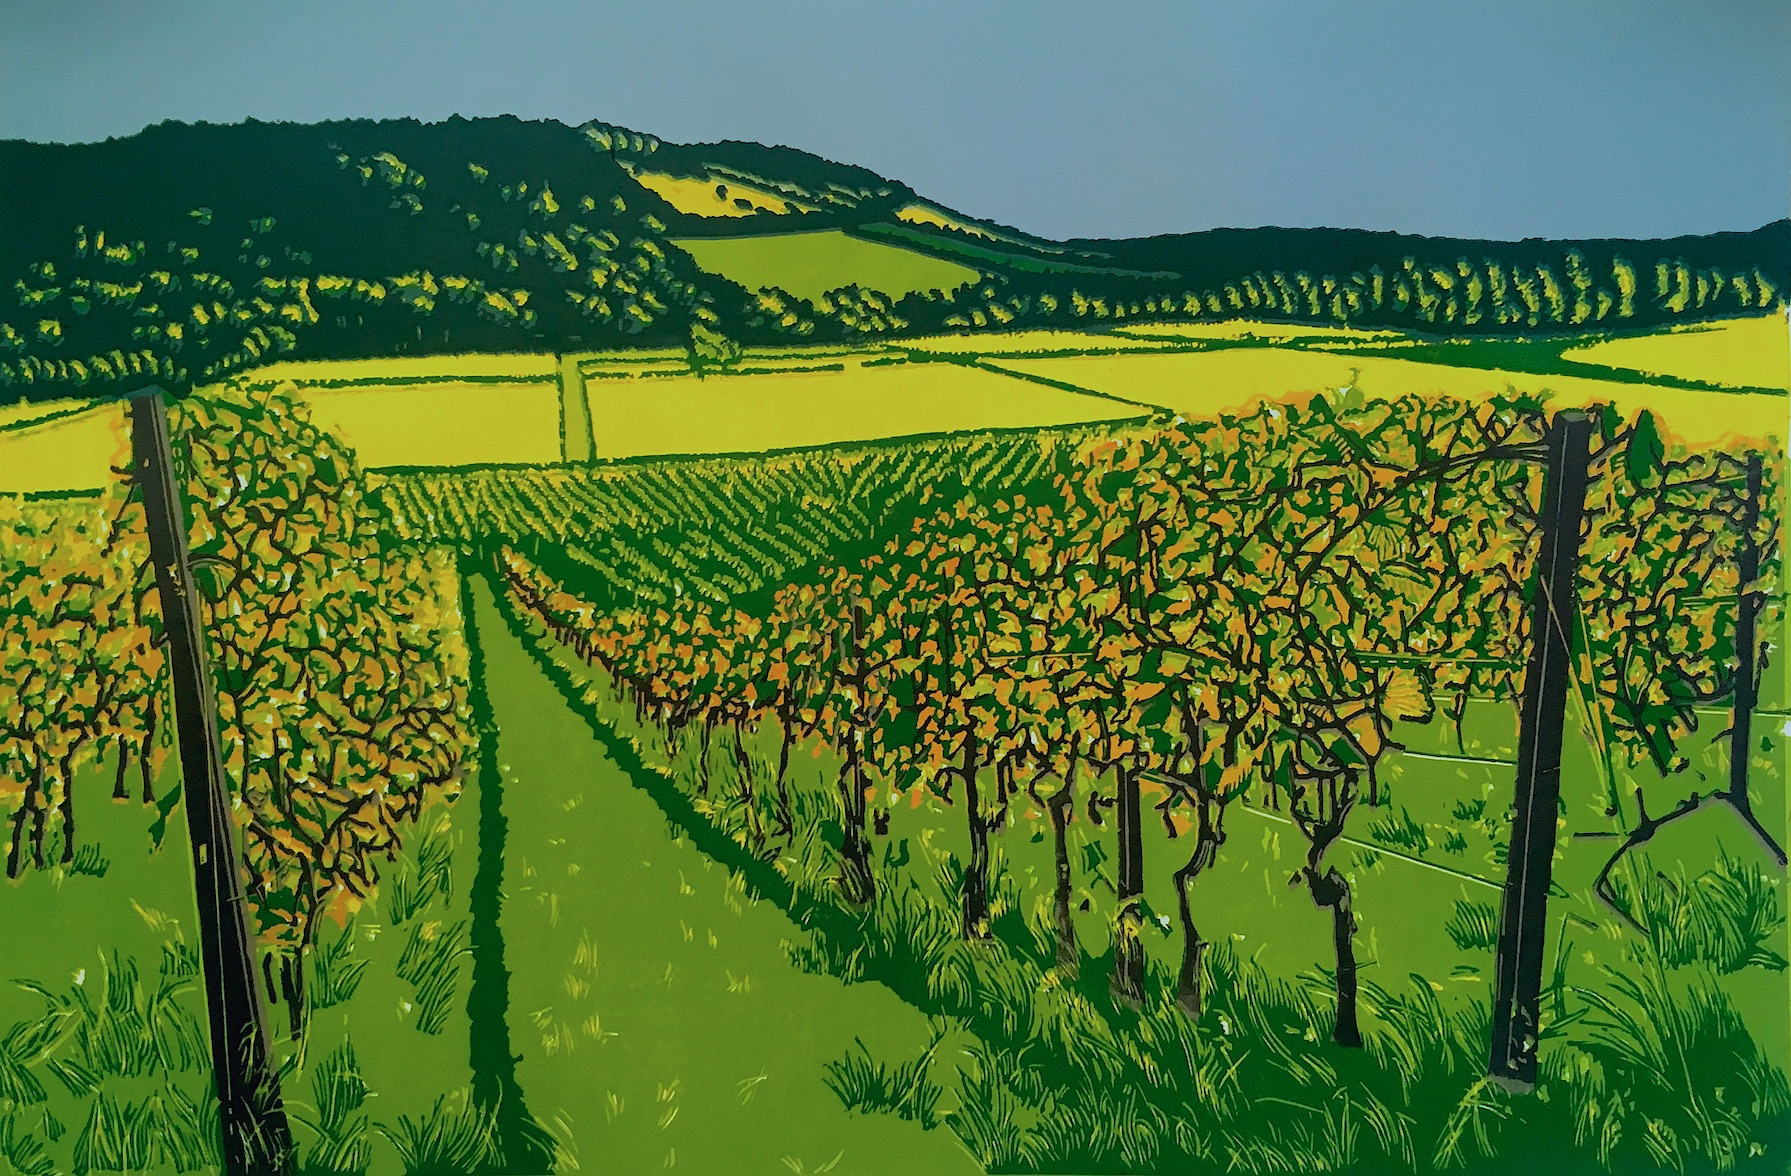 Box Hill View from Denbies  reduction  linocut   37.5 x 55cm image size  £270 unframed